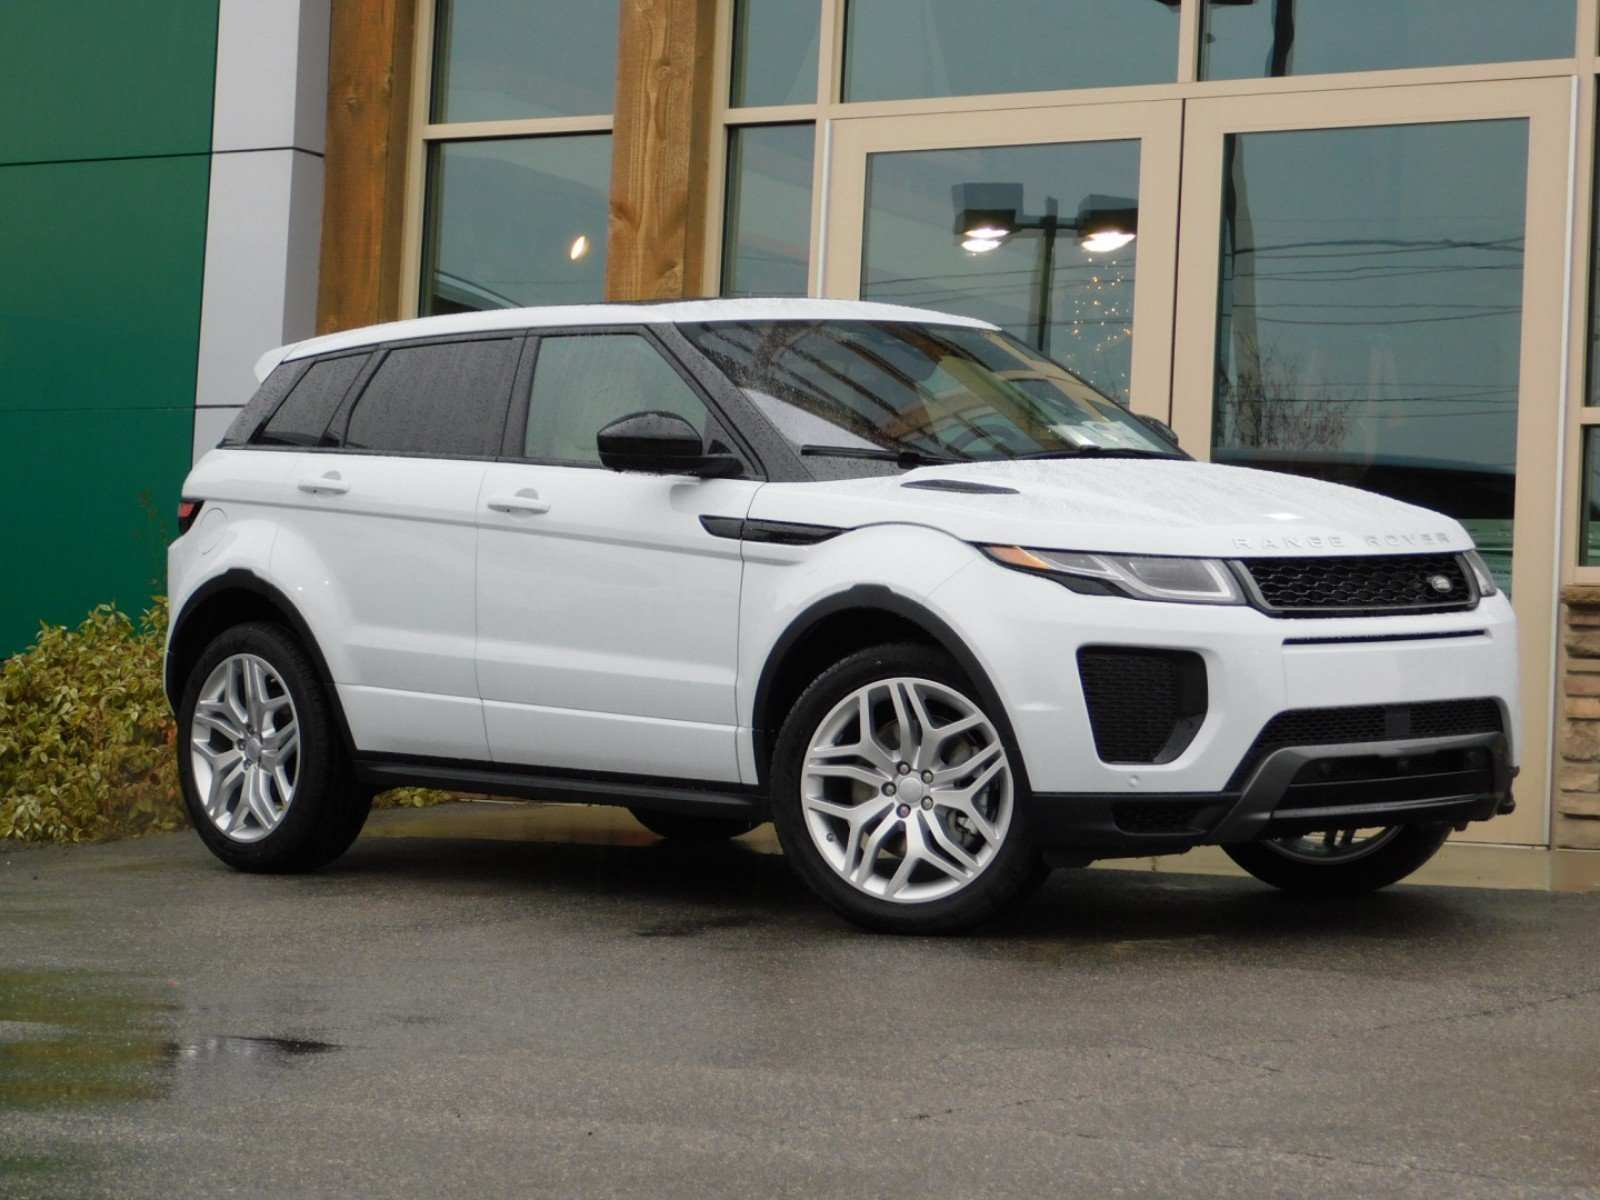 50 The Best 2019 Range Rover Evoque Xl Pricing